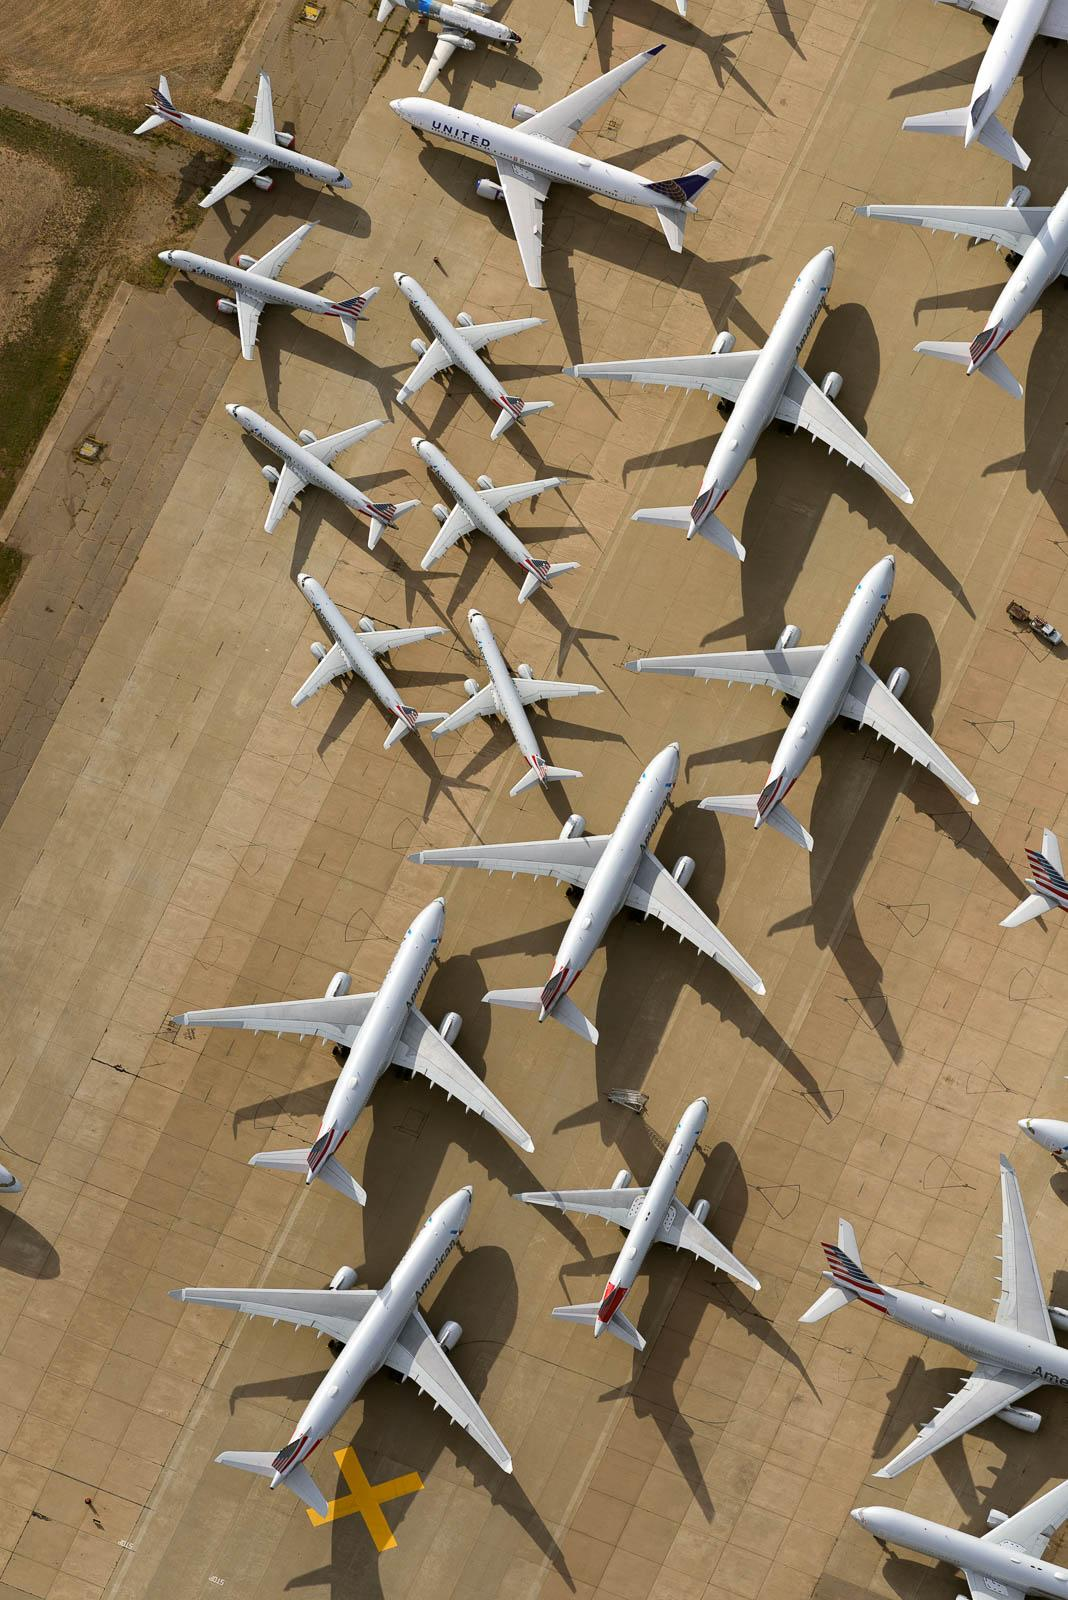 Here's a great combo of large and small airliners together